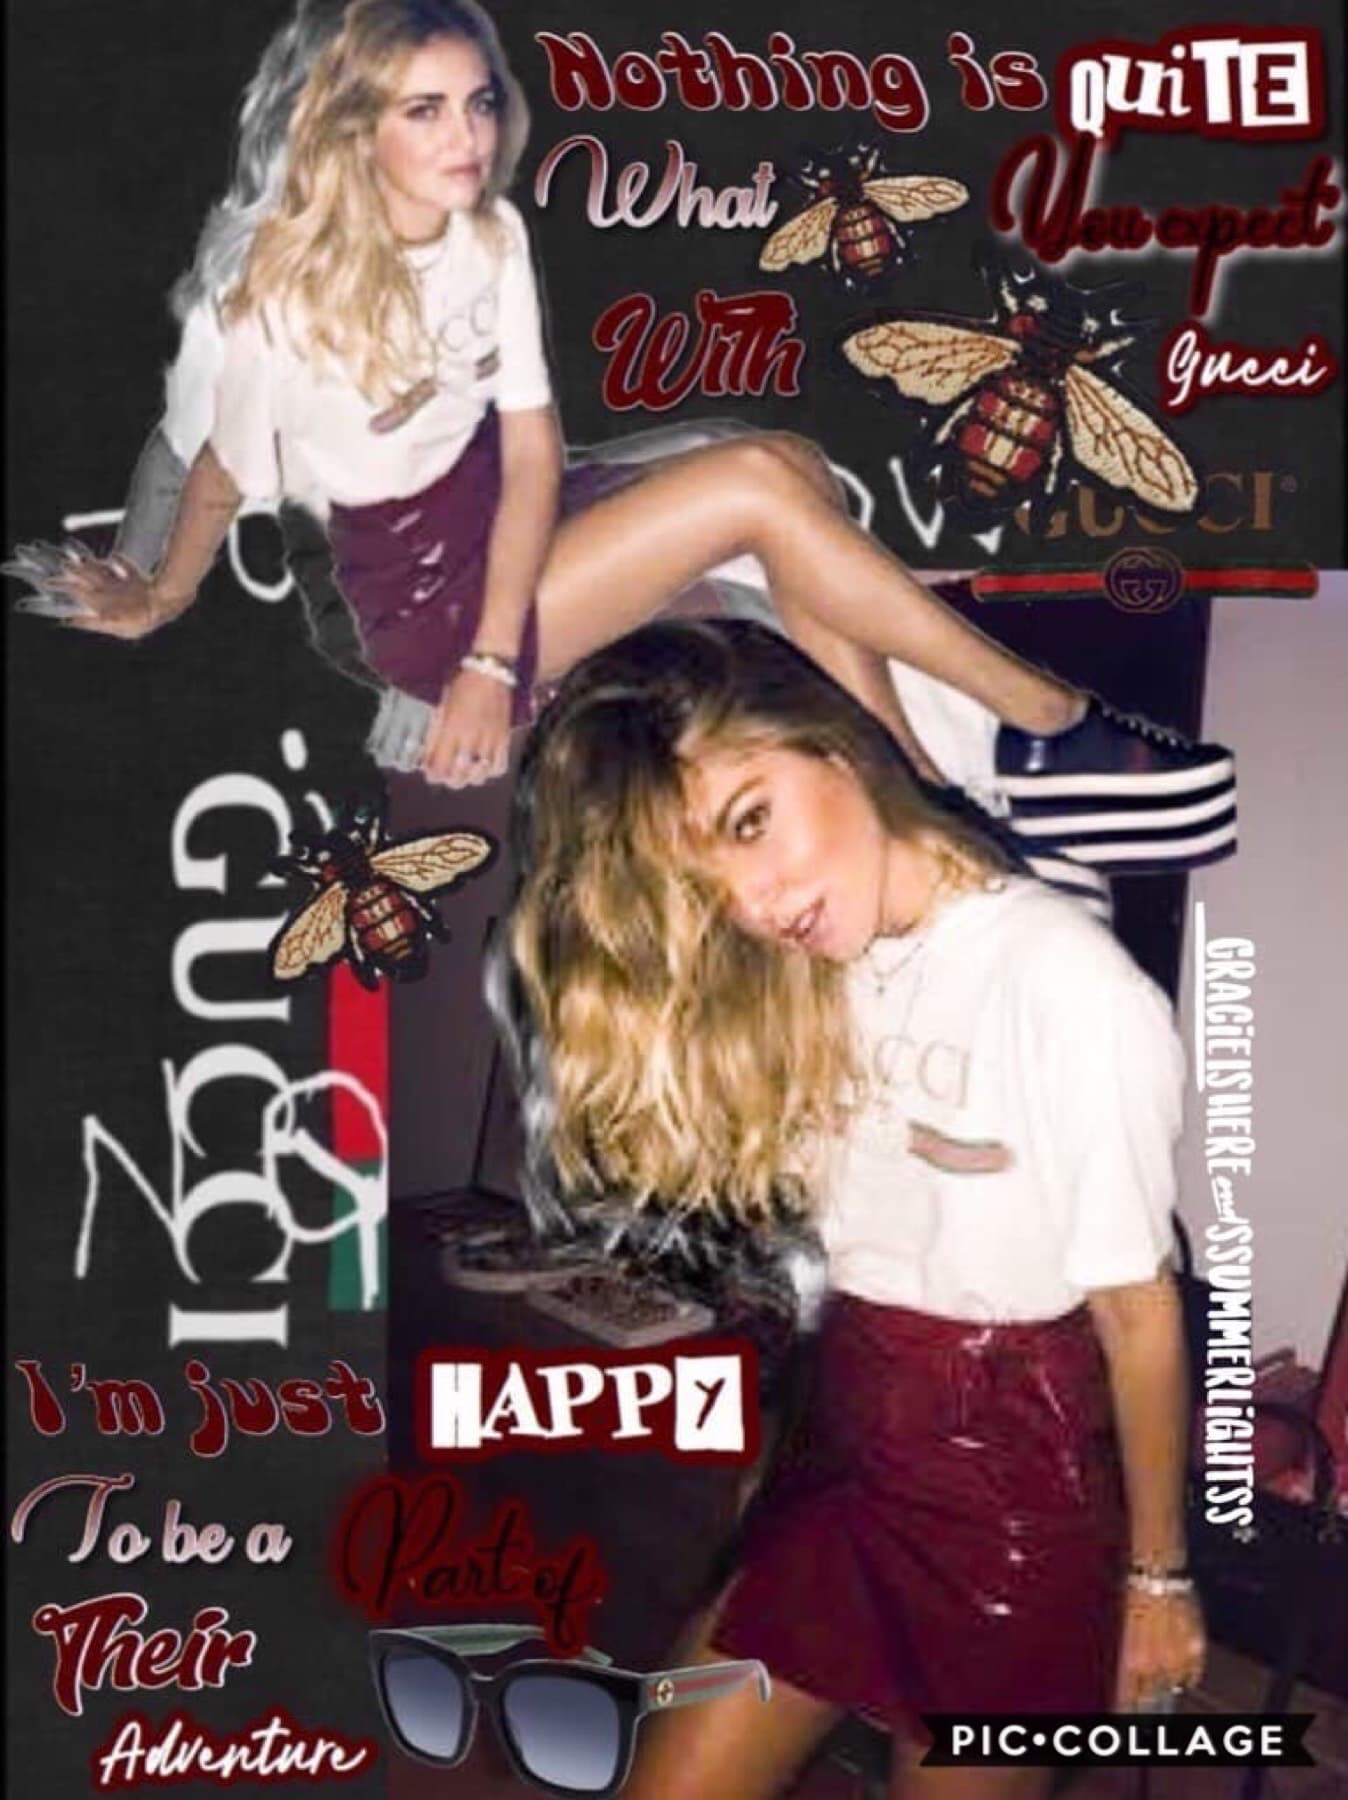 Collab with my BESTIE GRACIE_IS_HERE!!! I LOVED COLLABING WITH YOU SO MUCH SHE DID THE STUNNING BACKGROUND AND I DID THE GORG TEXT! SHE IS SOO AMAZING AND THE BEST COLLAGER EVERRRRRrrrRRRR ILYYYY😘😘😘❤️❤️❤️